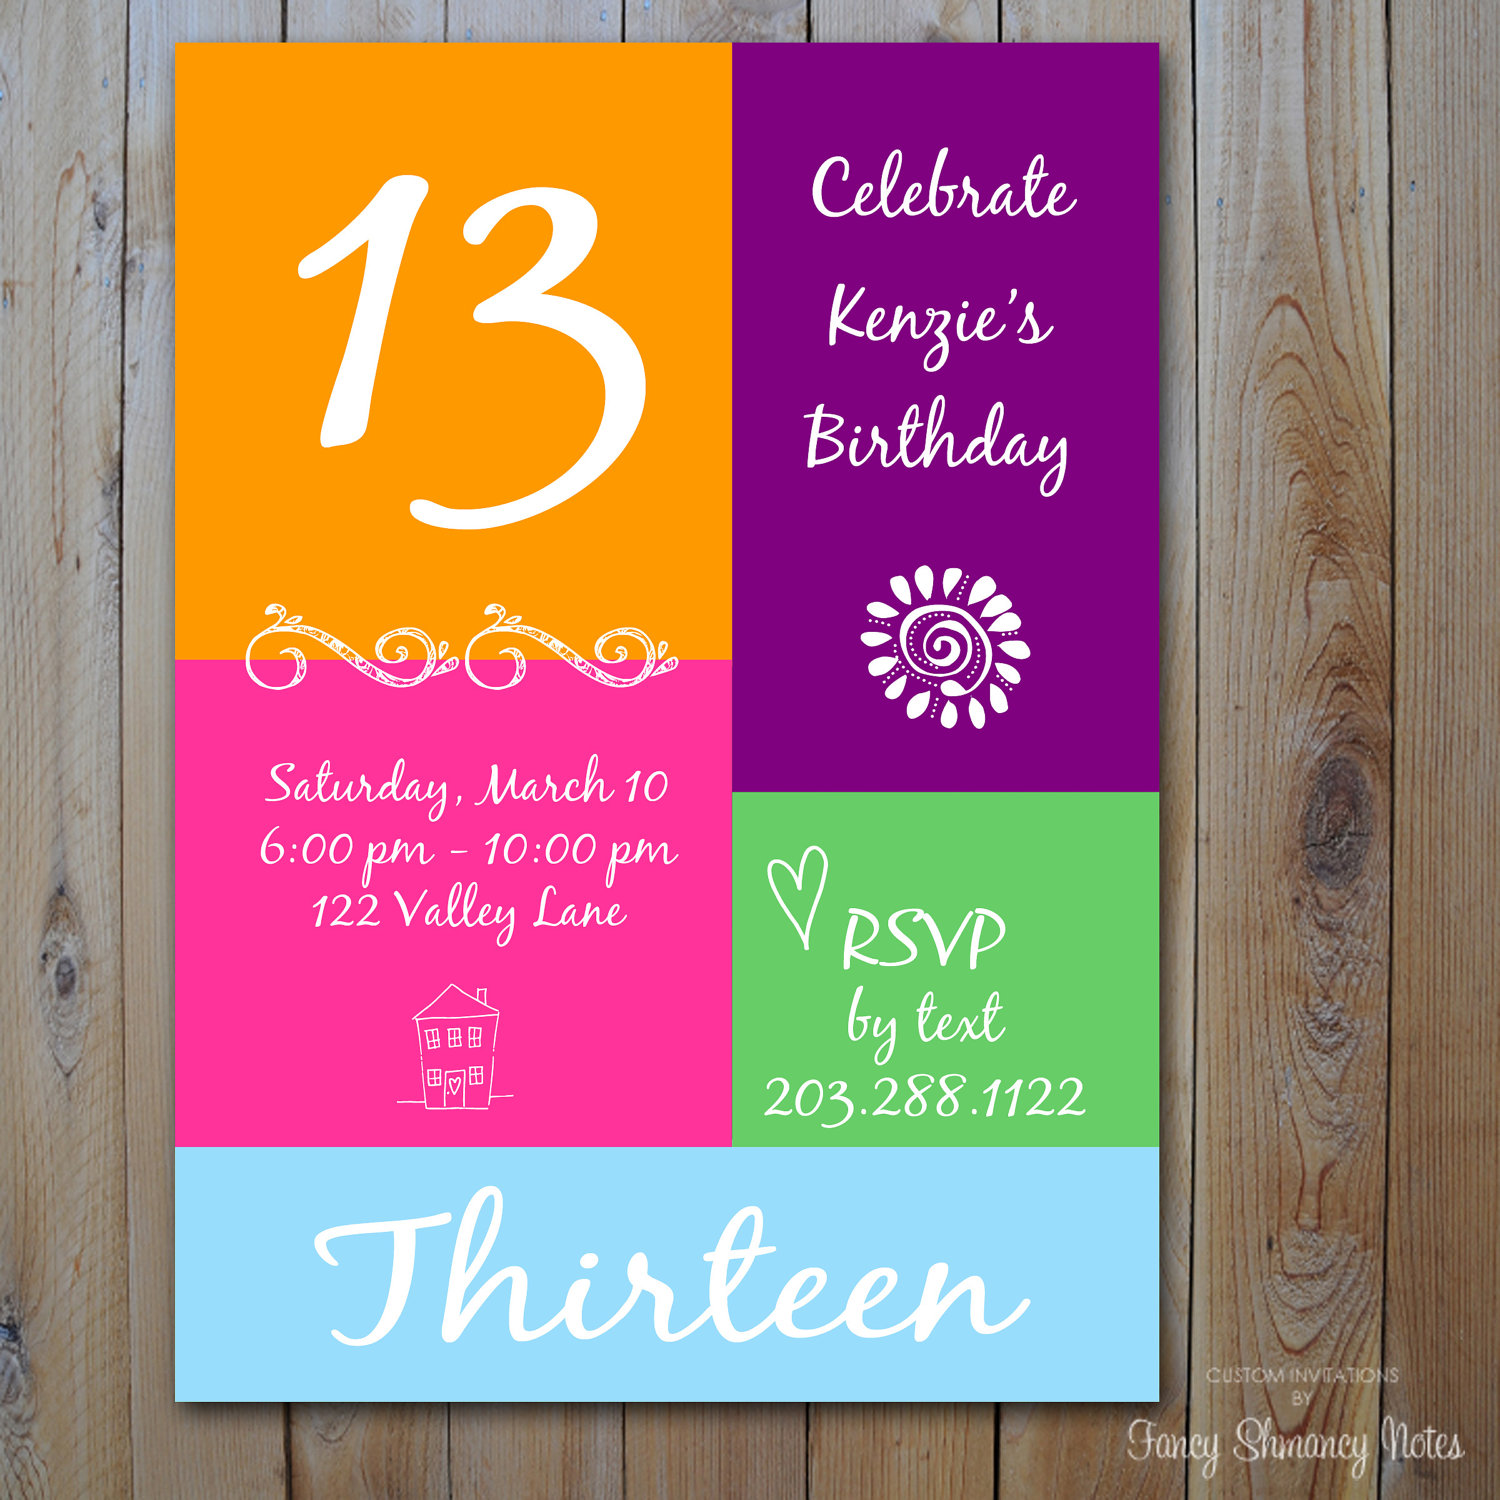 13th birthday invitations printable ; 13Th-Birthday-Invitations-Printable-and-get-inspired-to-create-your-own-birthday-Invitation-design-with-this-ideas-1